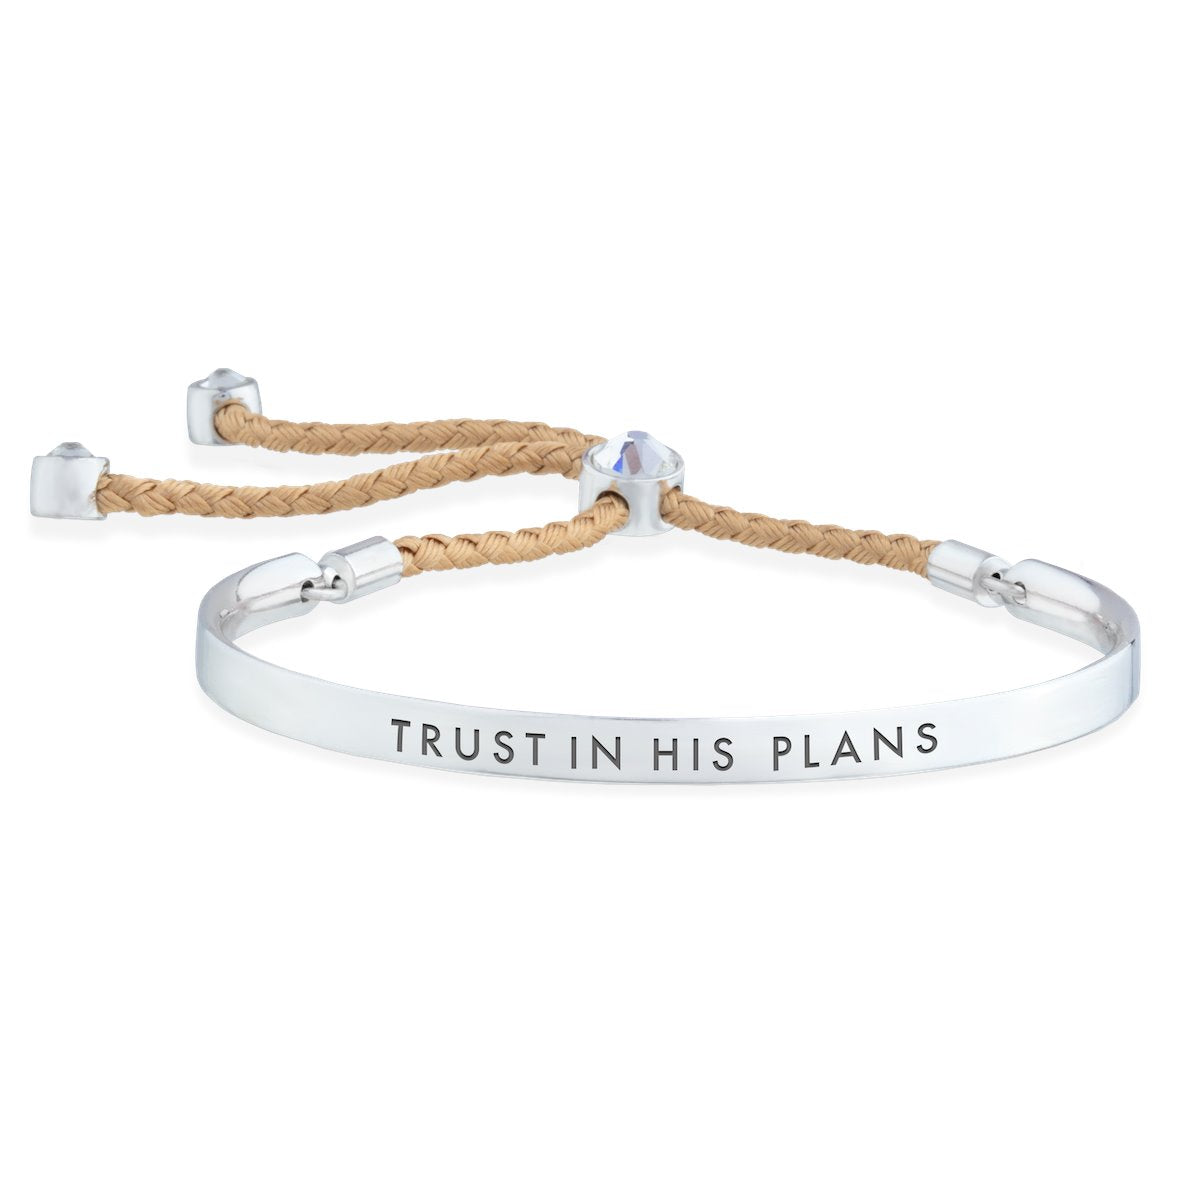 Trust in His Plans – Words of Empowerment Bracelet